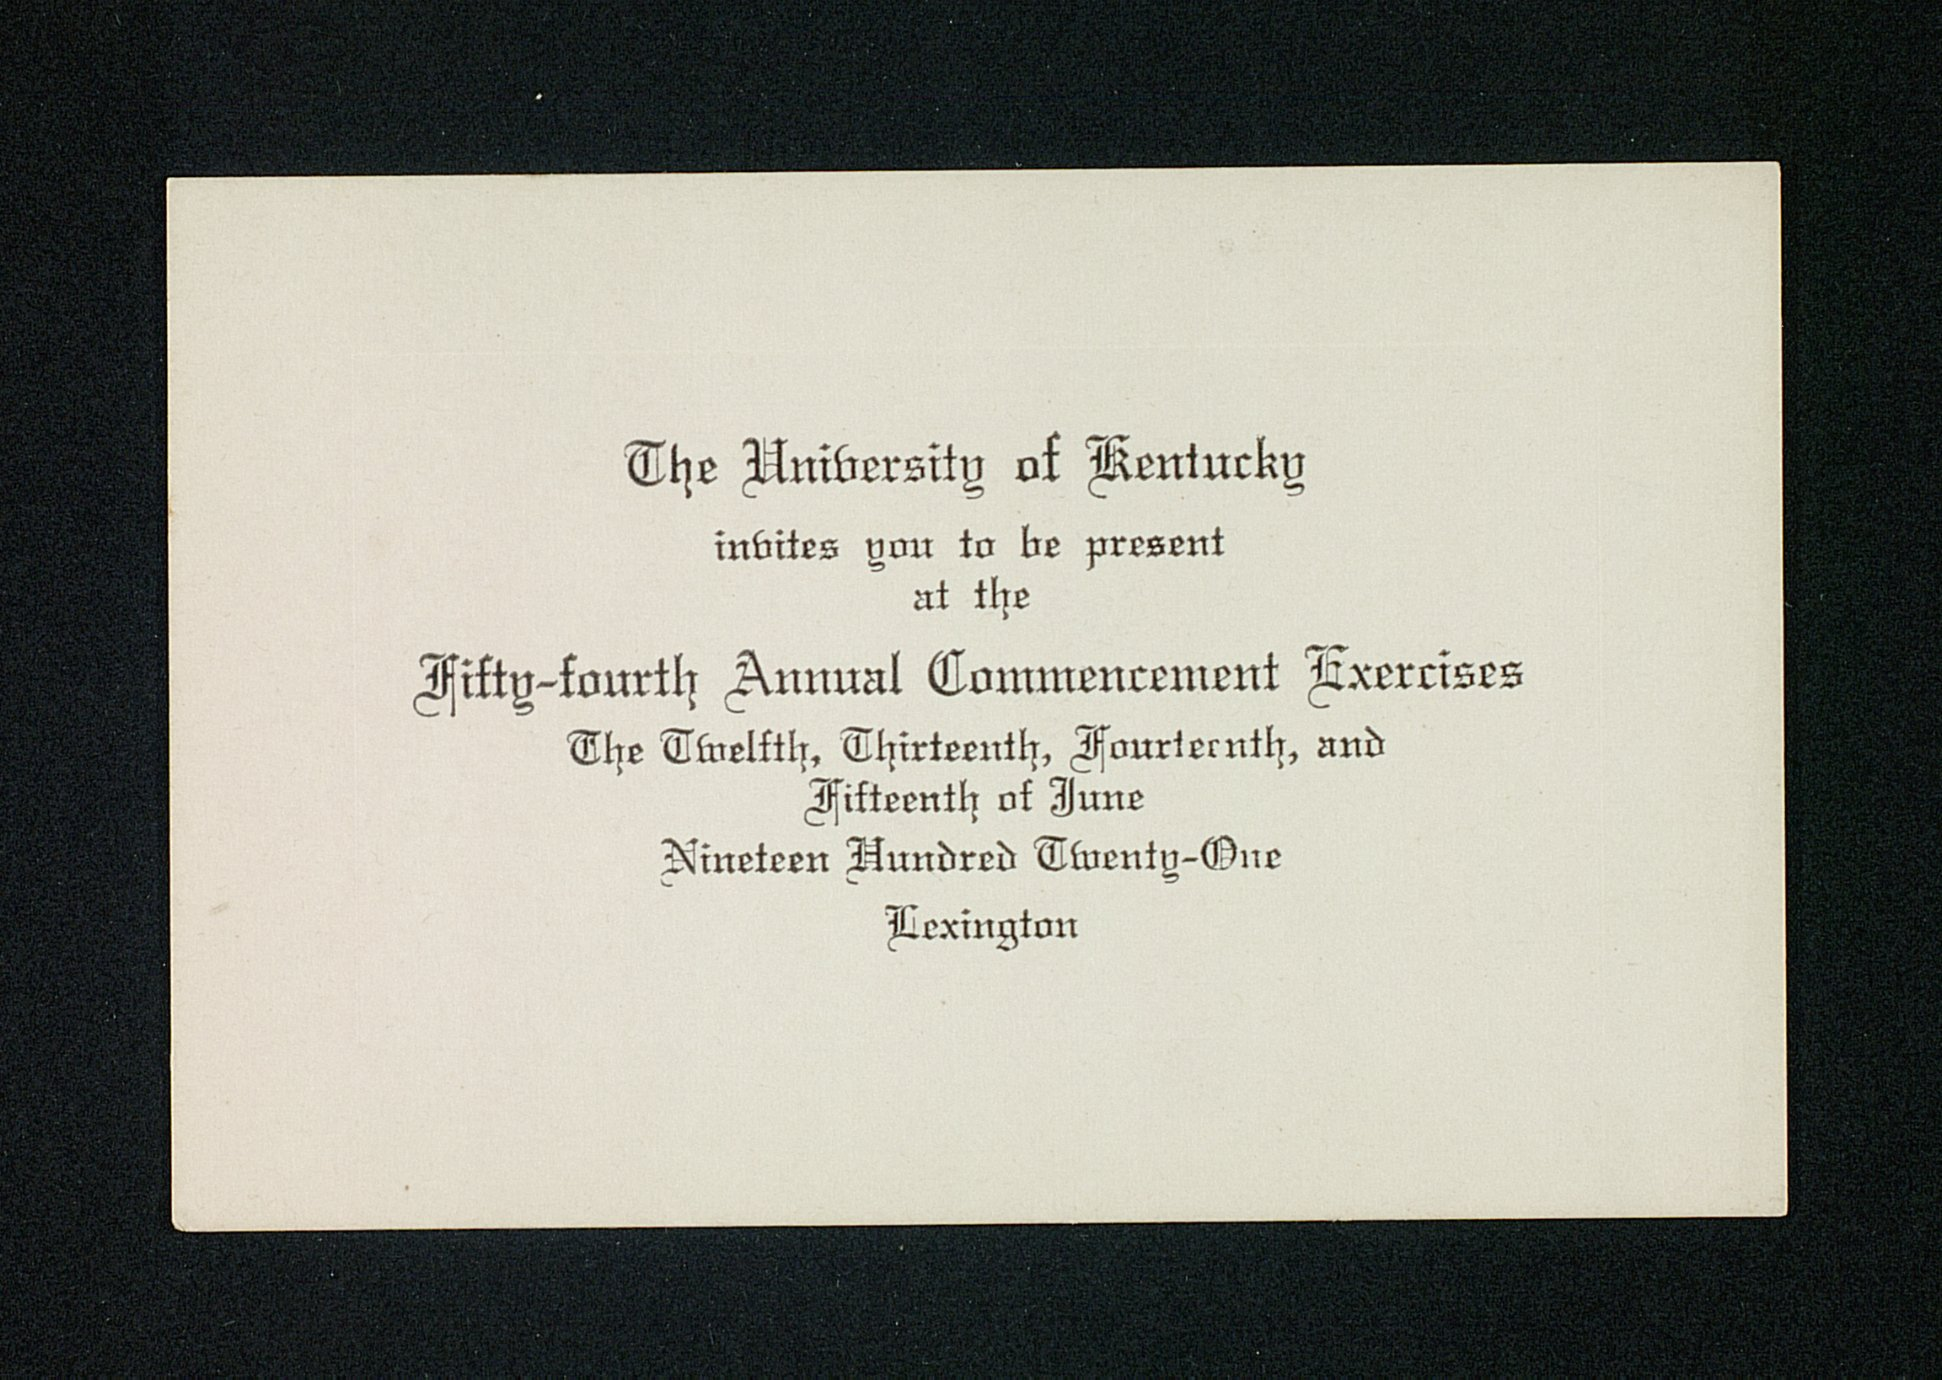 Uk 54th annual commencement exercises invite card kentucky digital part of university of kentucky commencement programs and invitations stopboris Choice Image